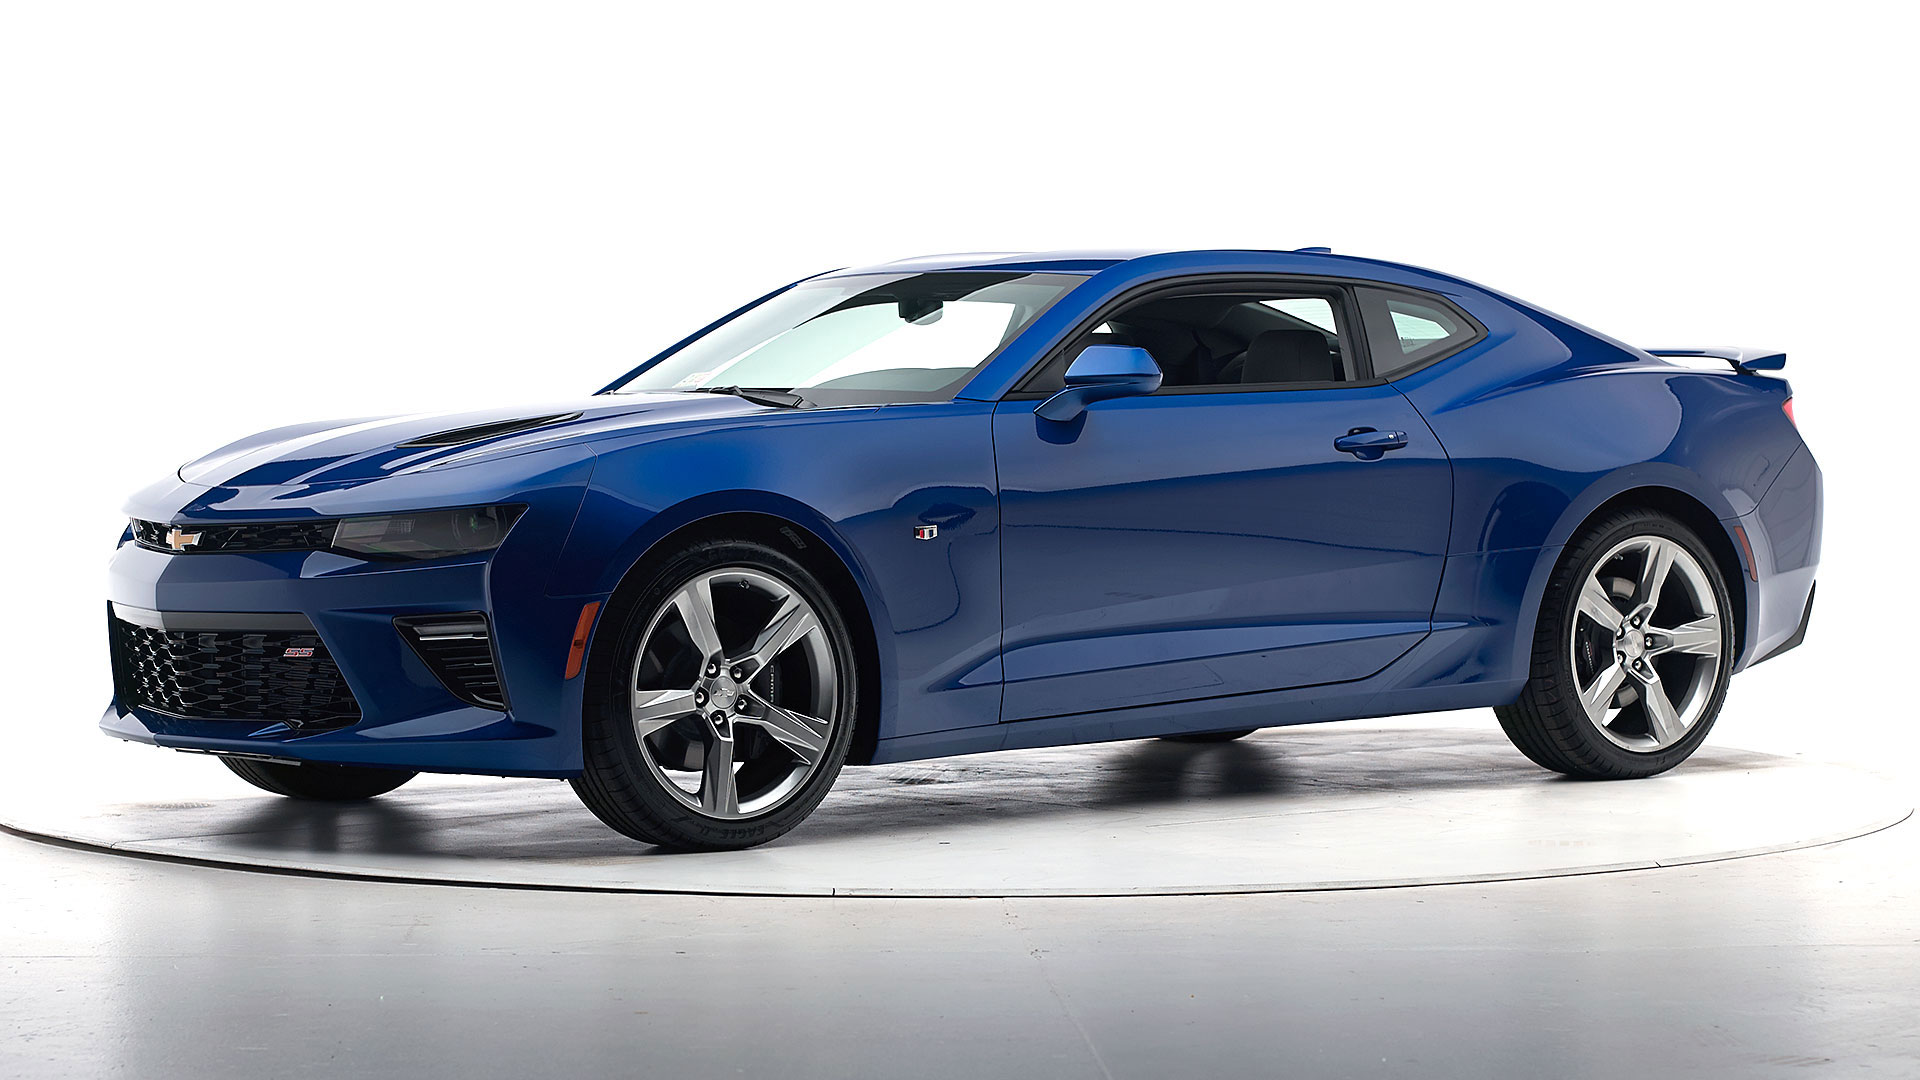 2018 Chevrolet Camaro 2-door coupe